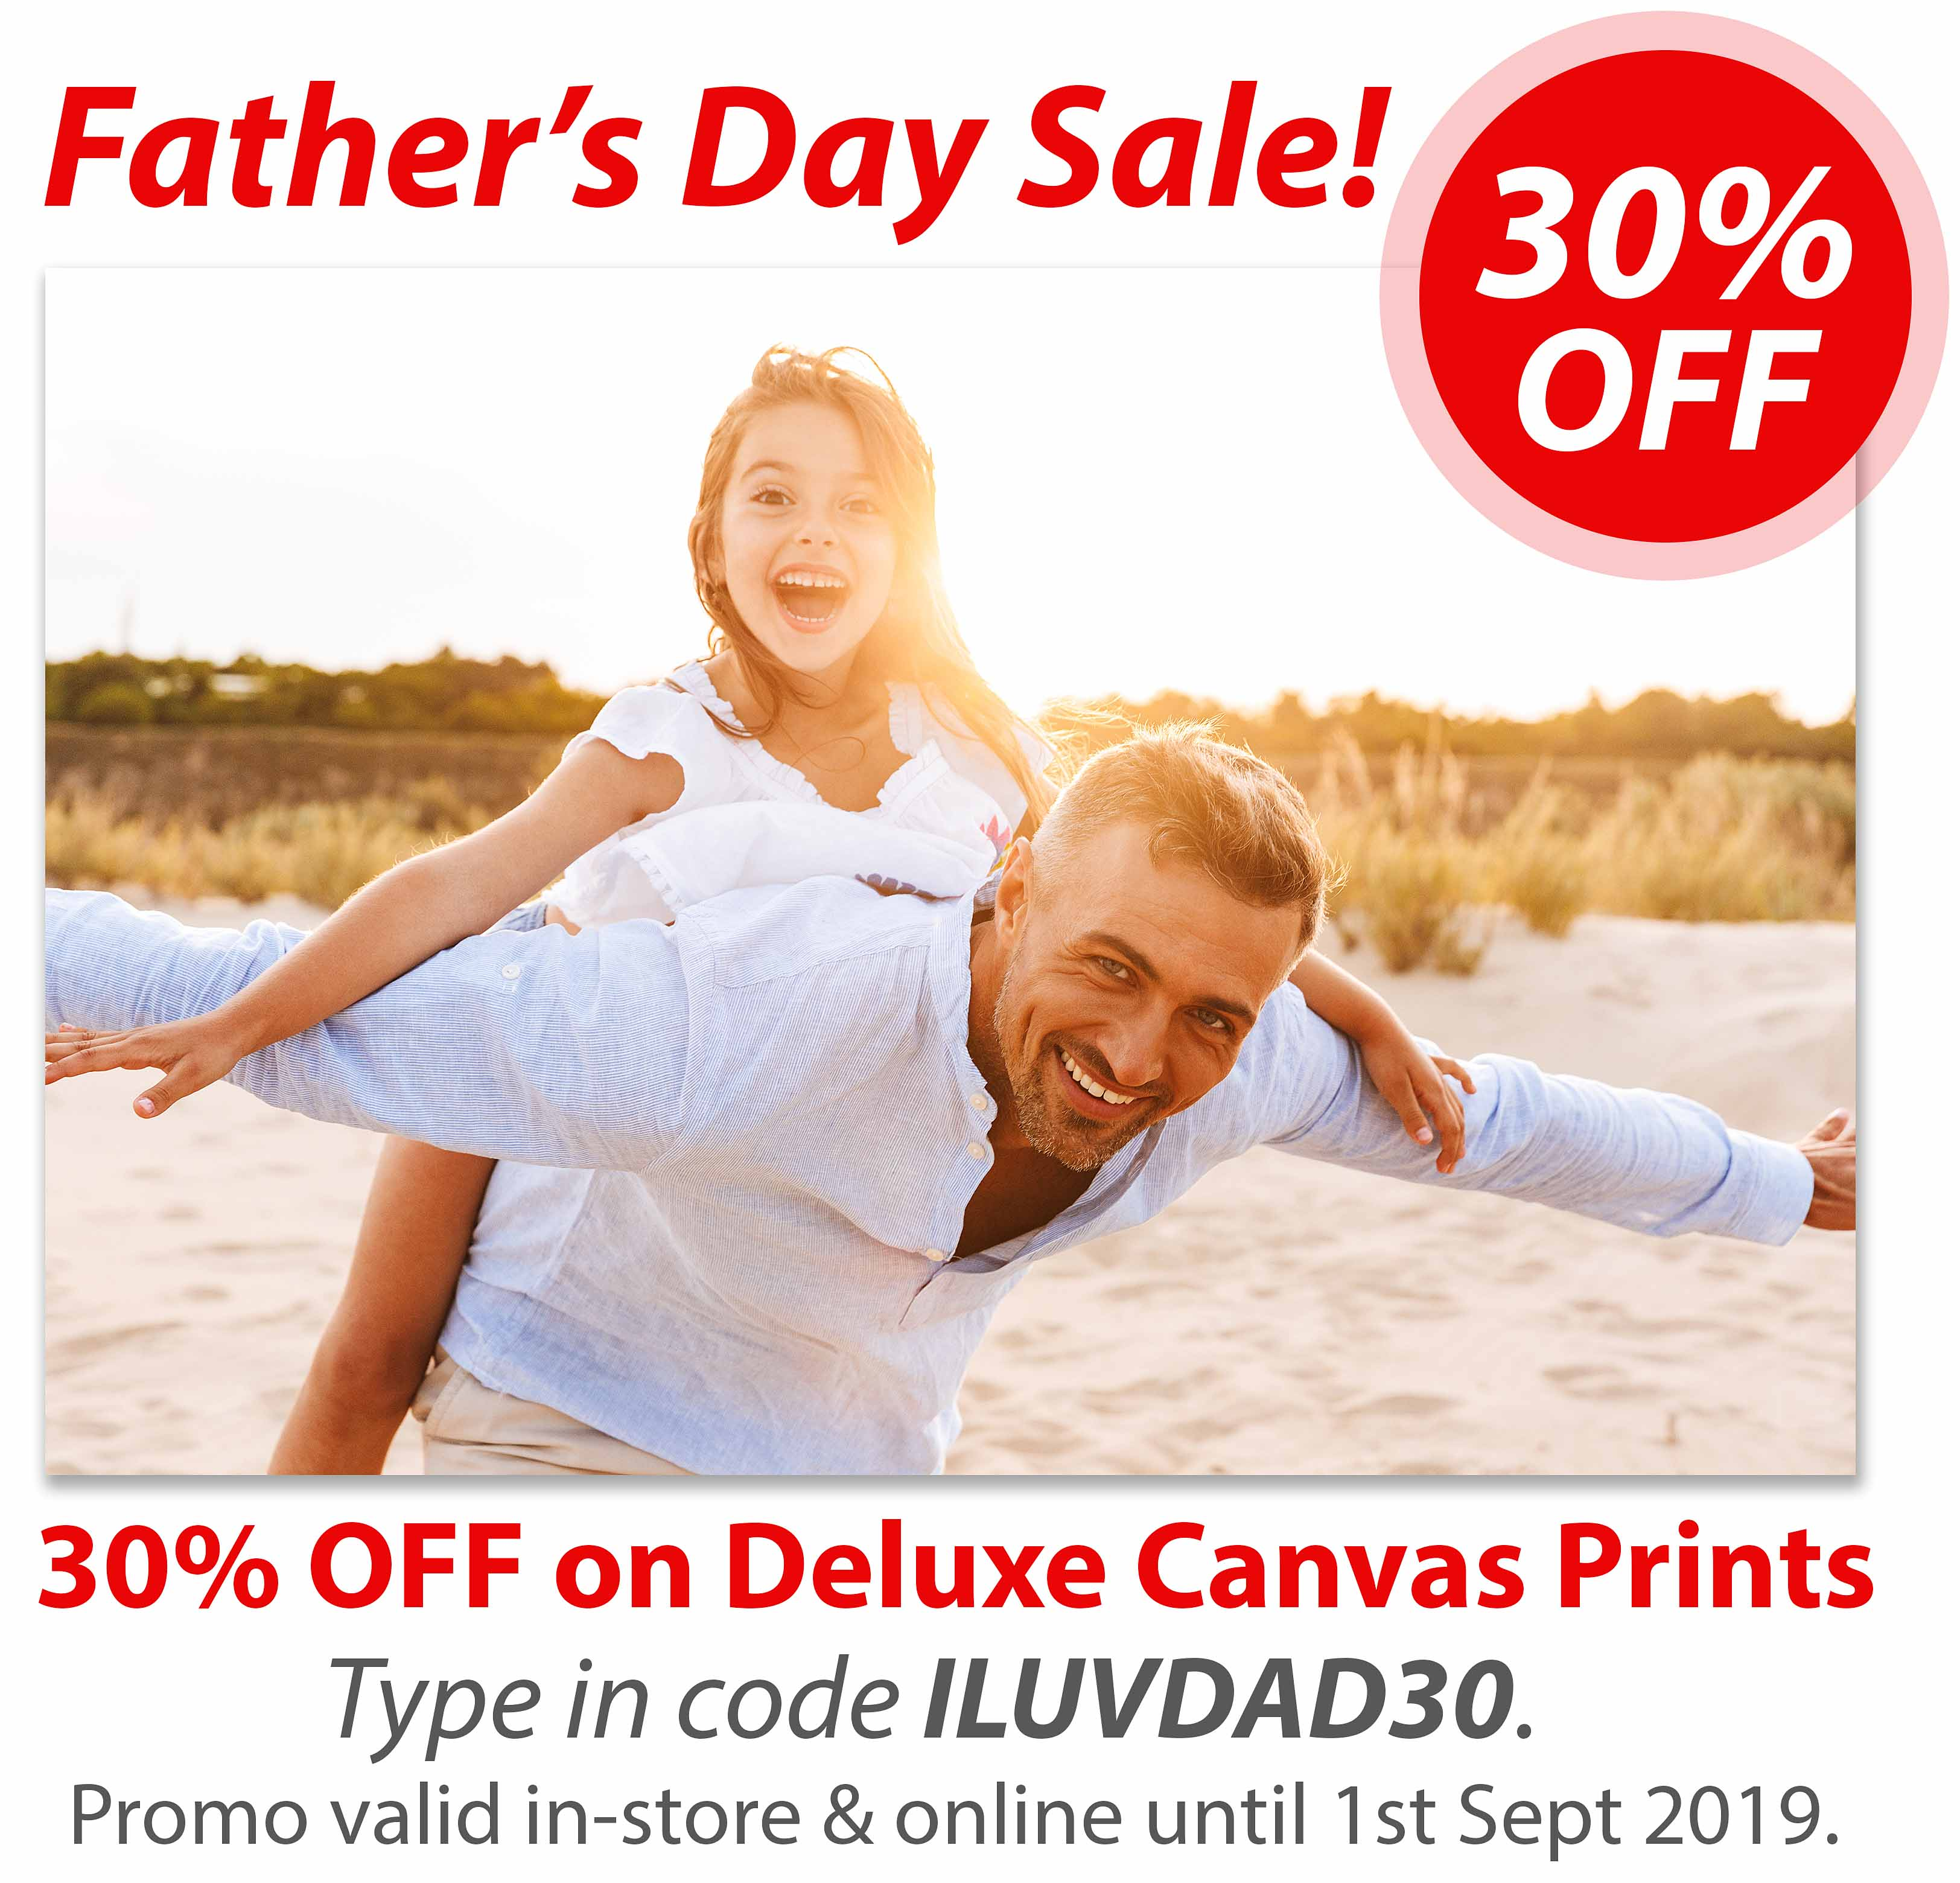 Deluxe Art FATHERs DAY SALE 2019 Canvas Print